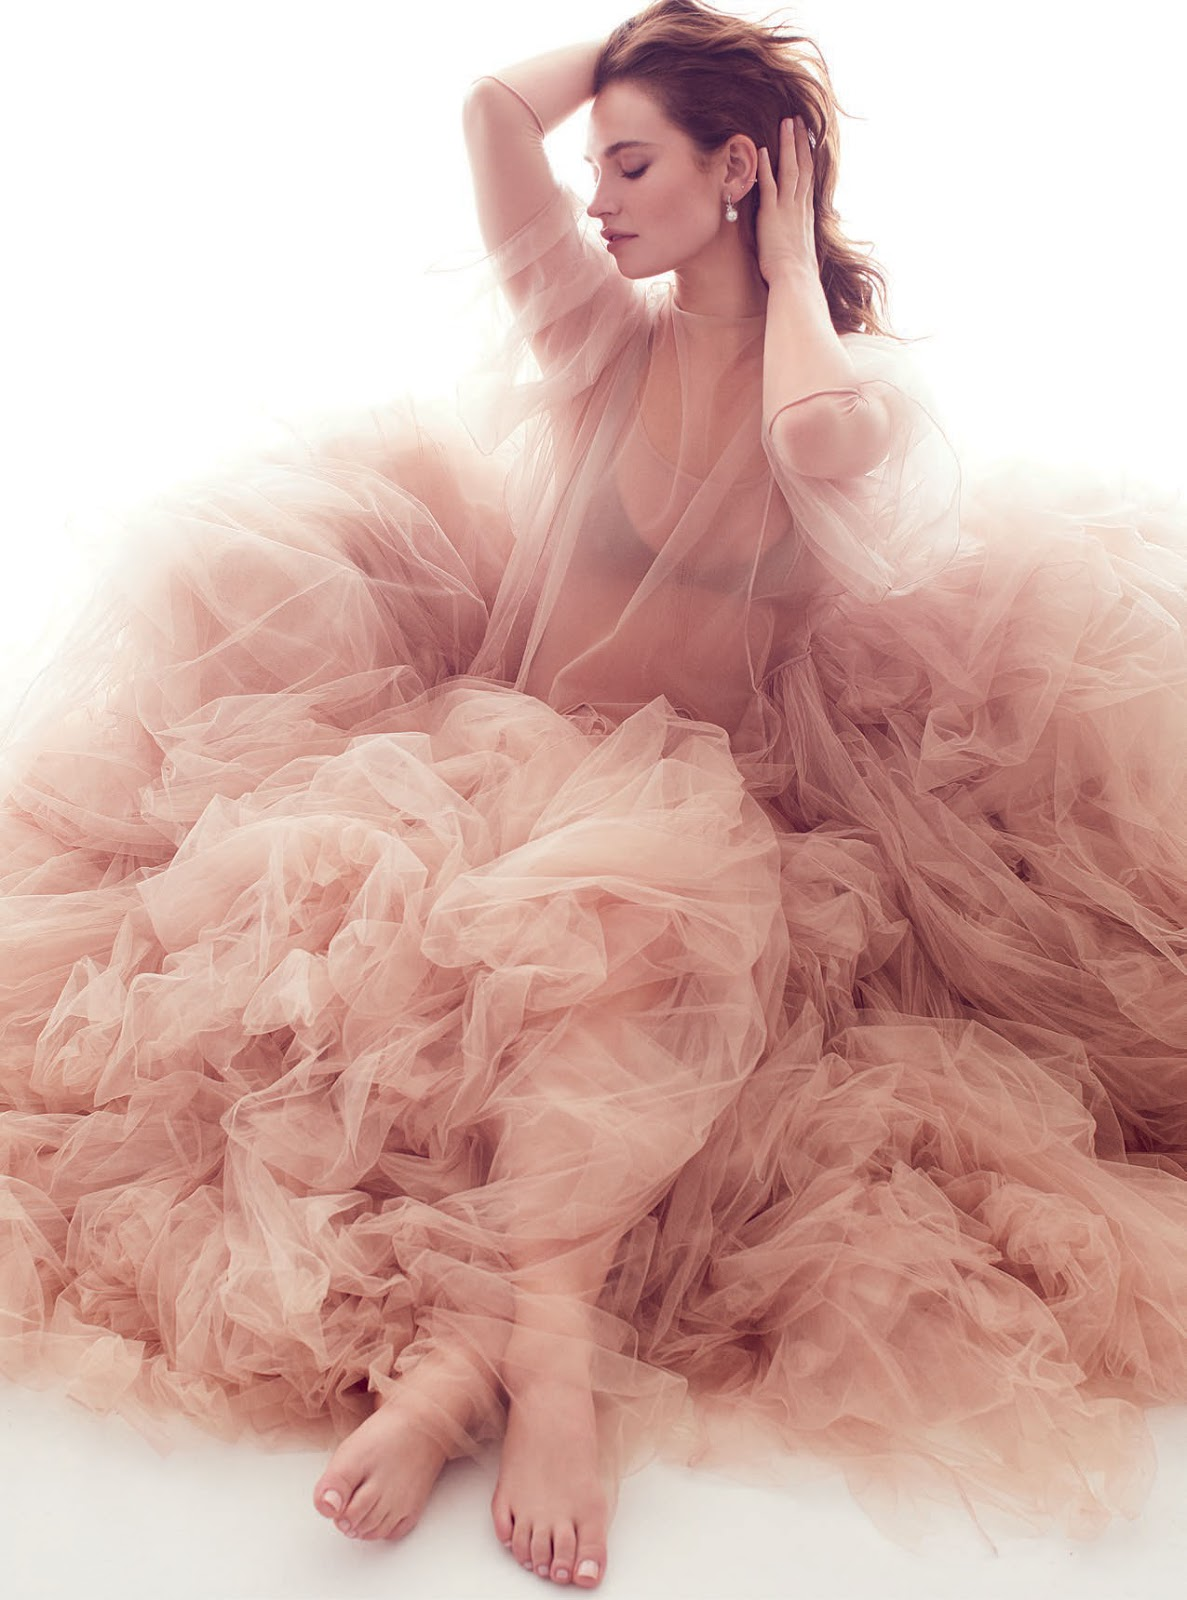 Lily James by Alex Lubomirski for Harpers Bazaar UK March 2019 (4).jpg